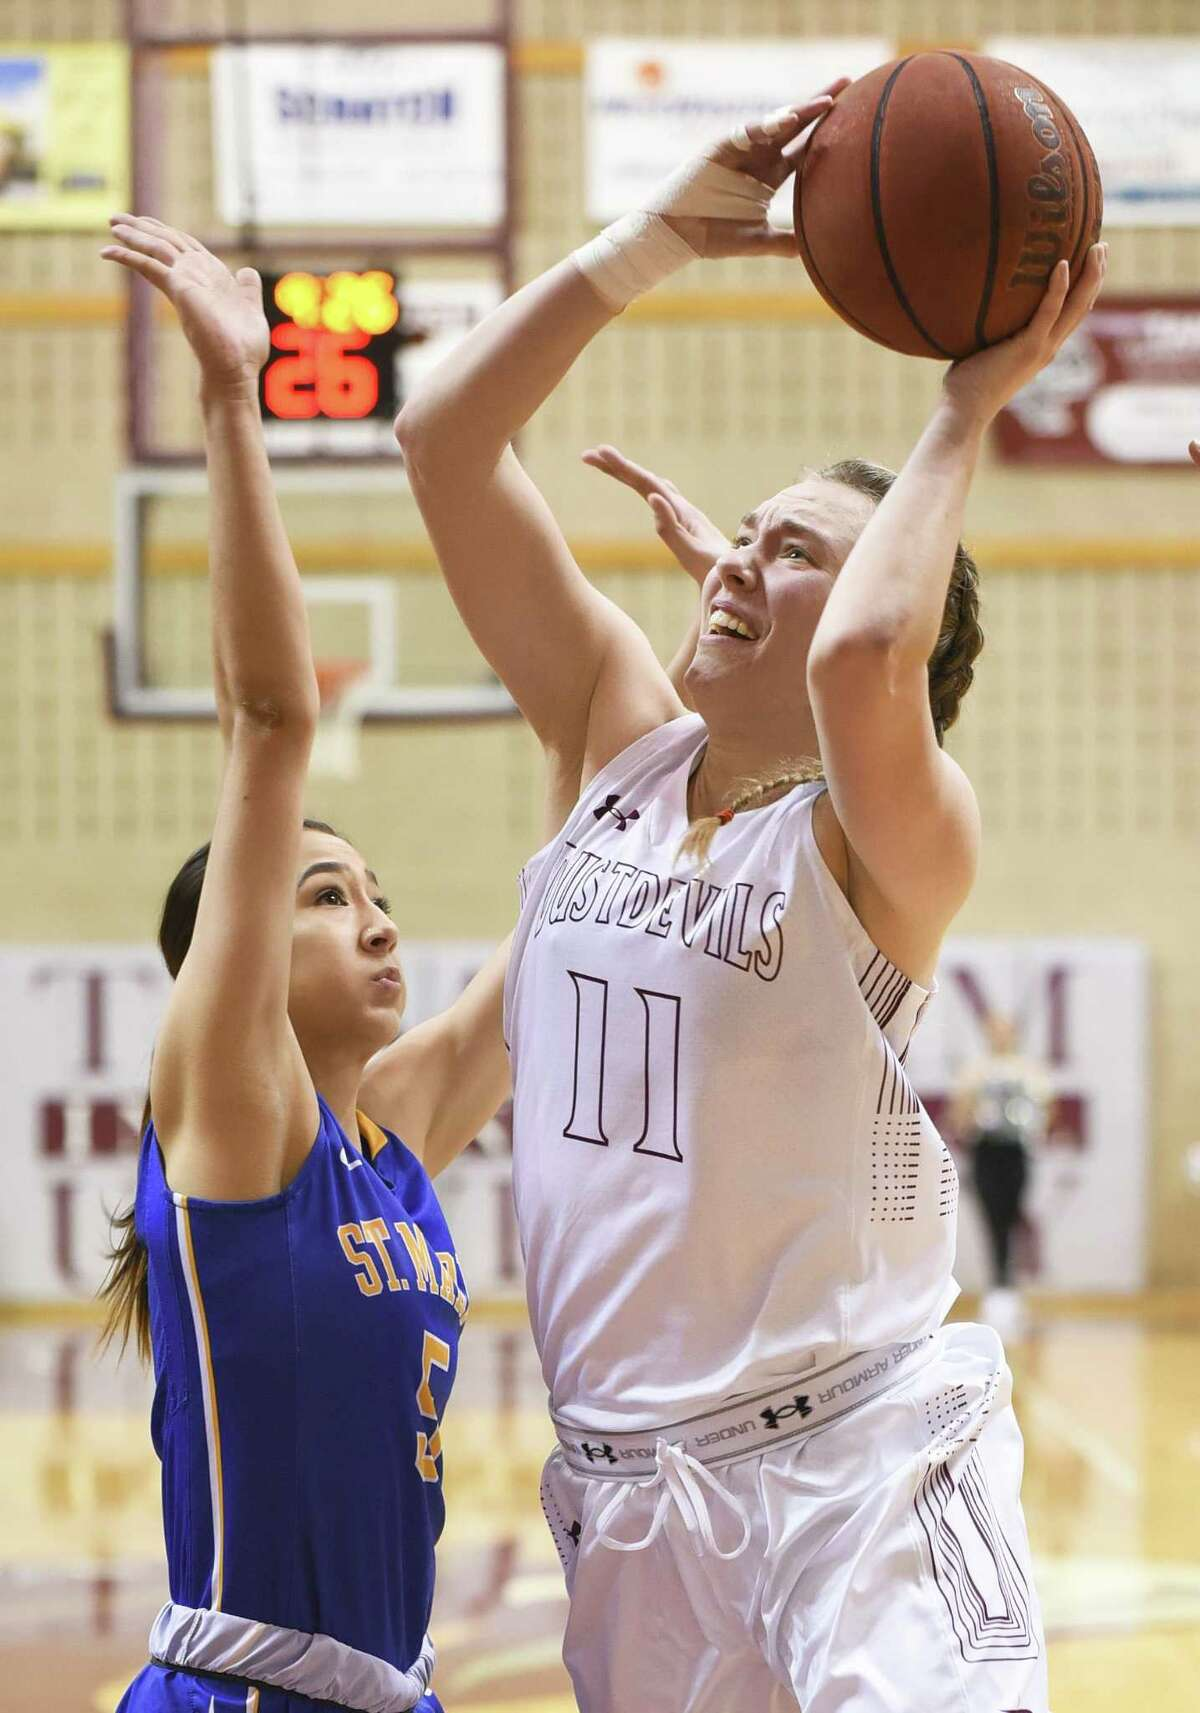 Julia Hanni and the Dustdevils have lost all 14 games against Division II opponents this season and have dropped 23 straight dating back to last year.